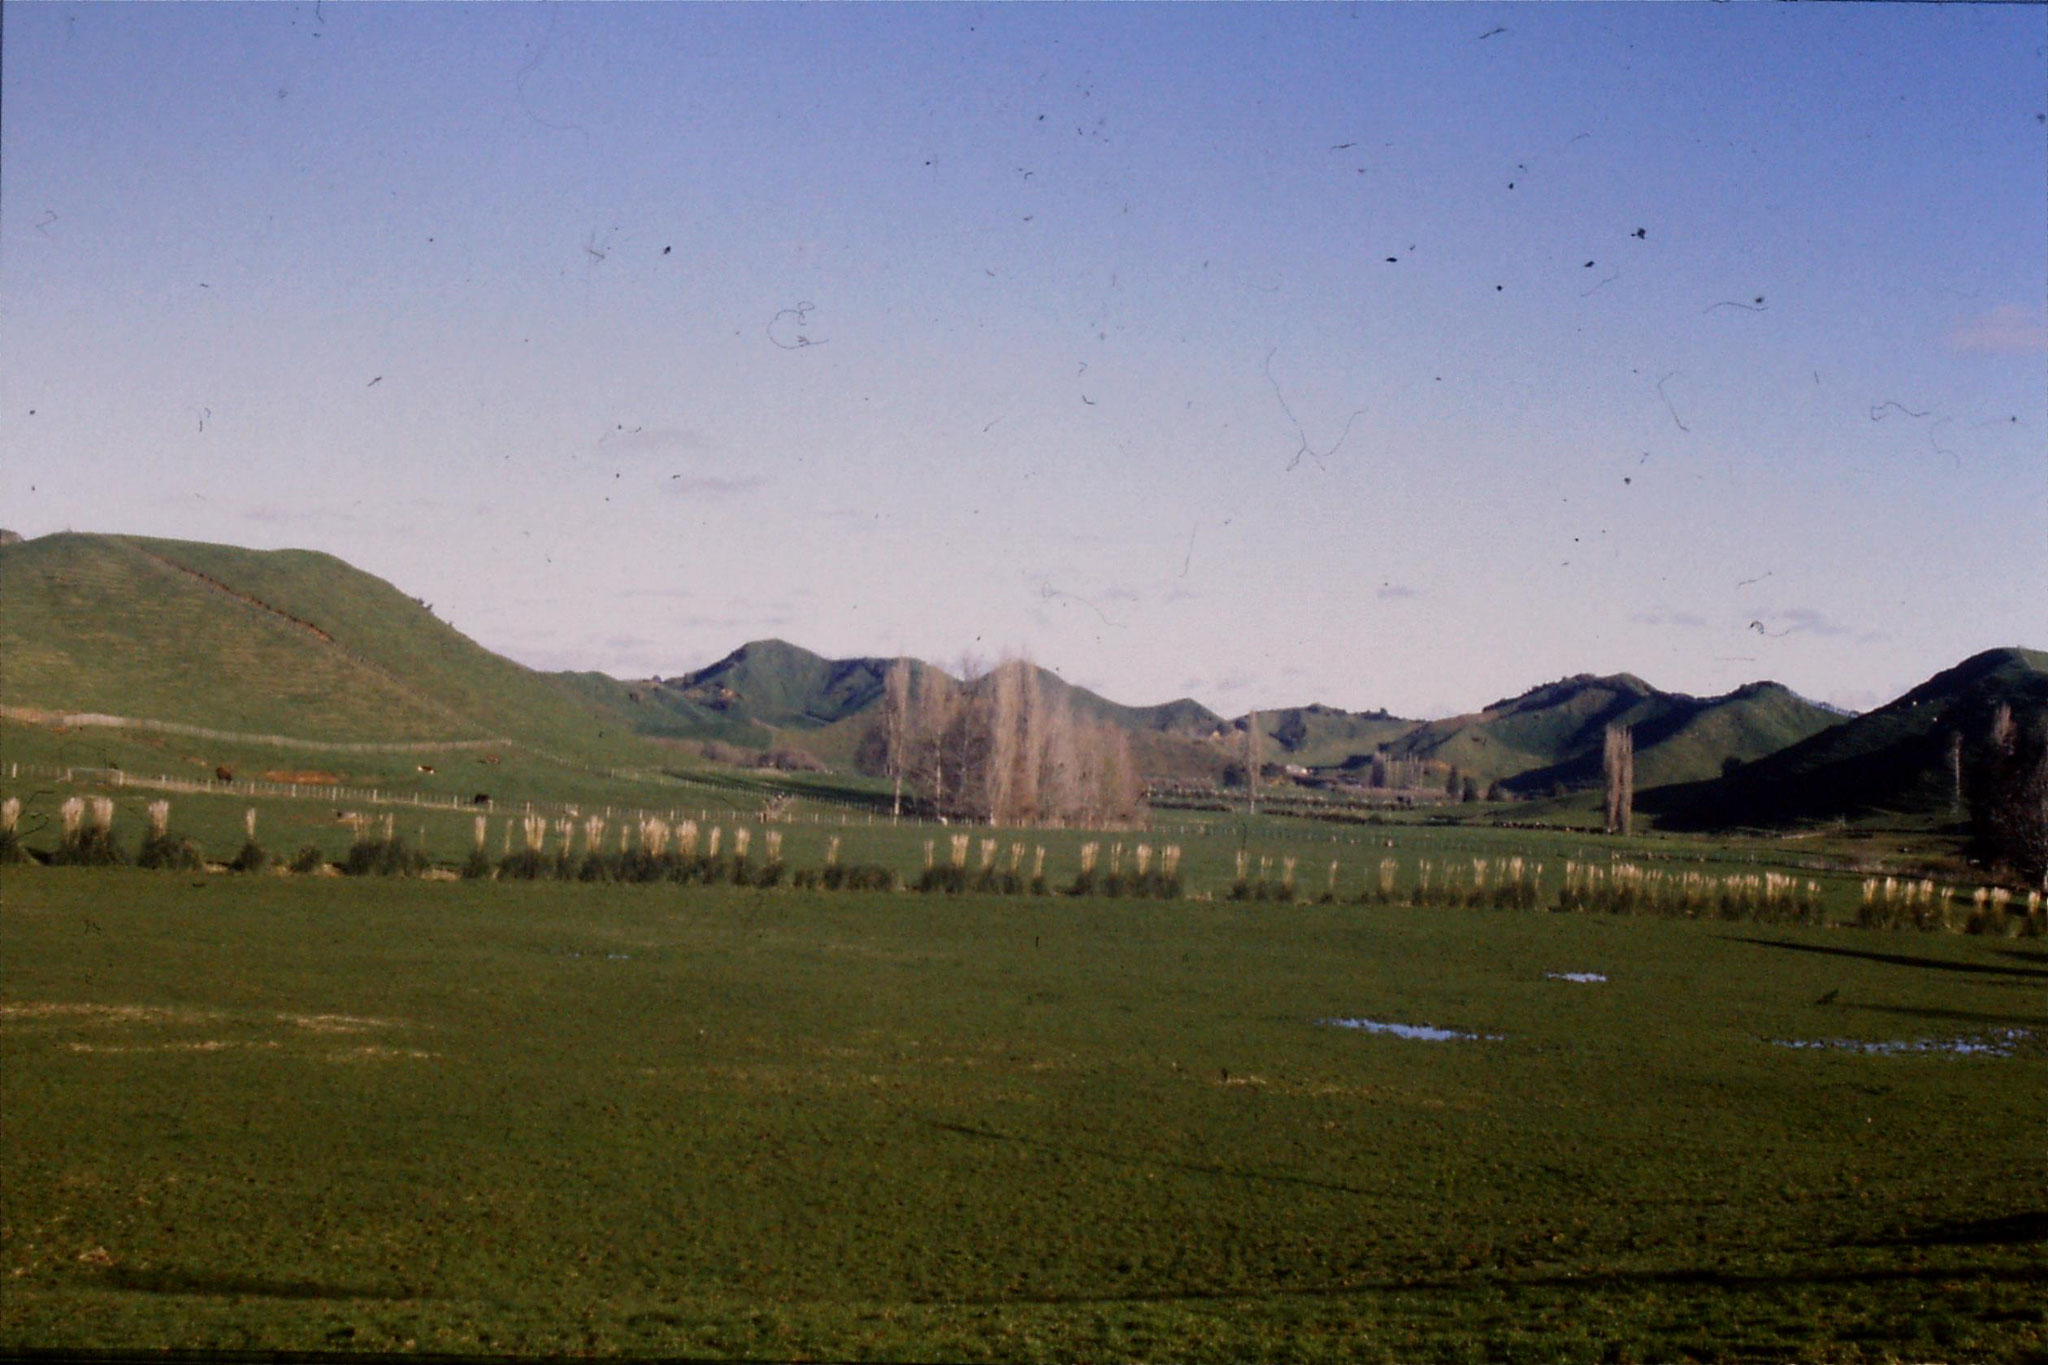 28/8/1990: 19: farmland near Douglas